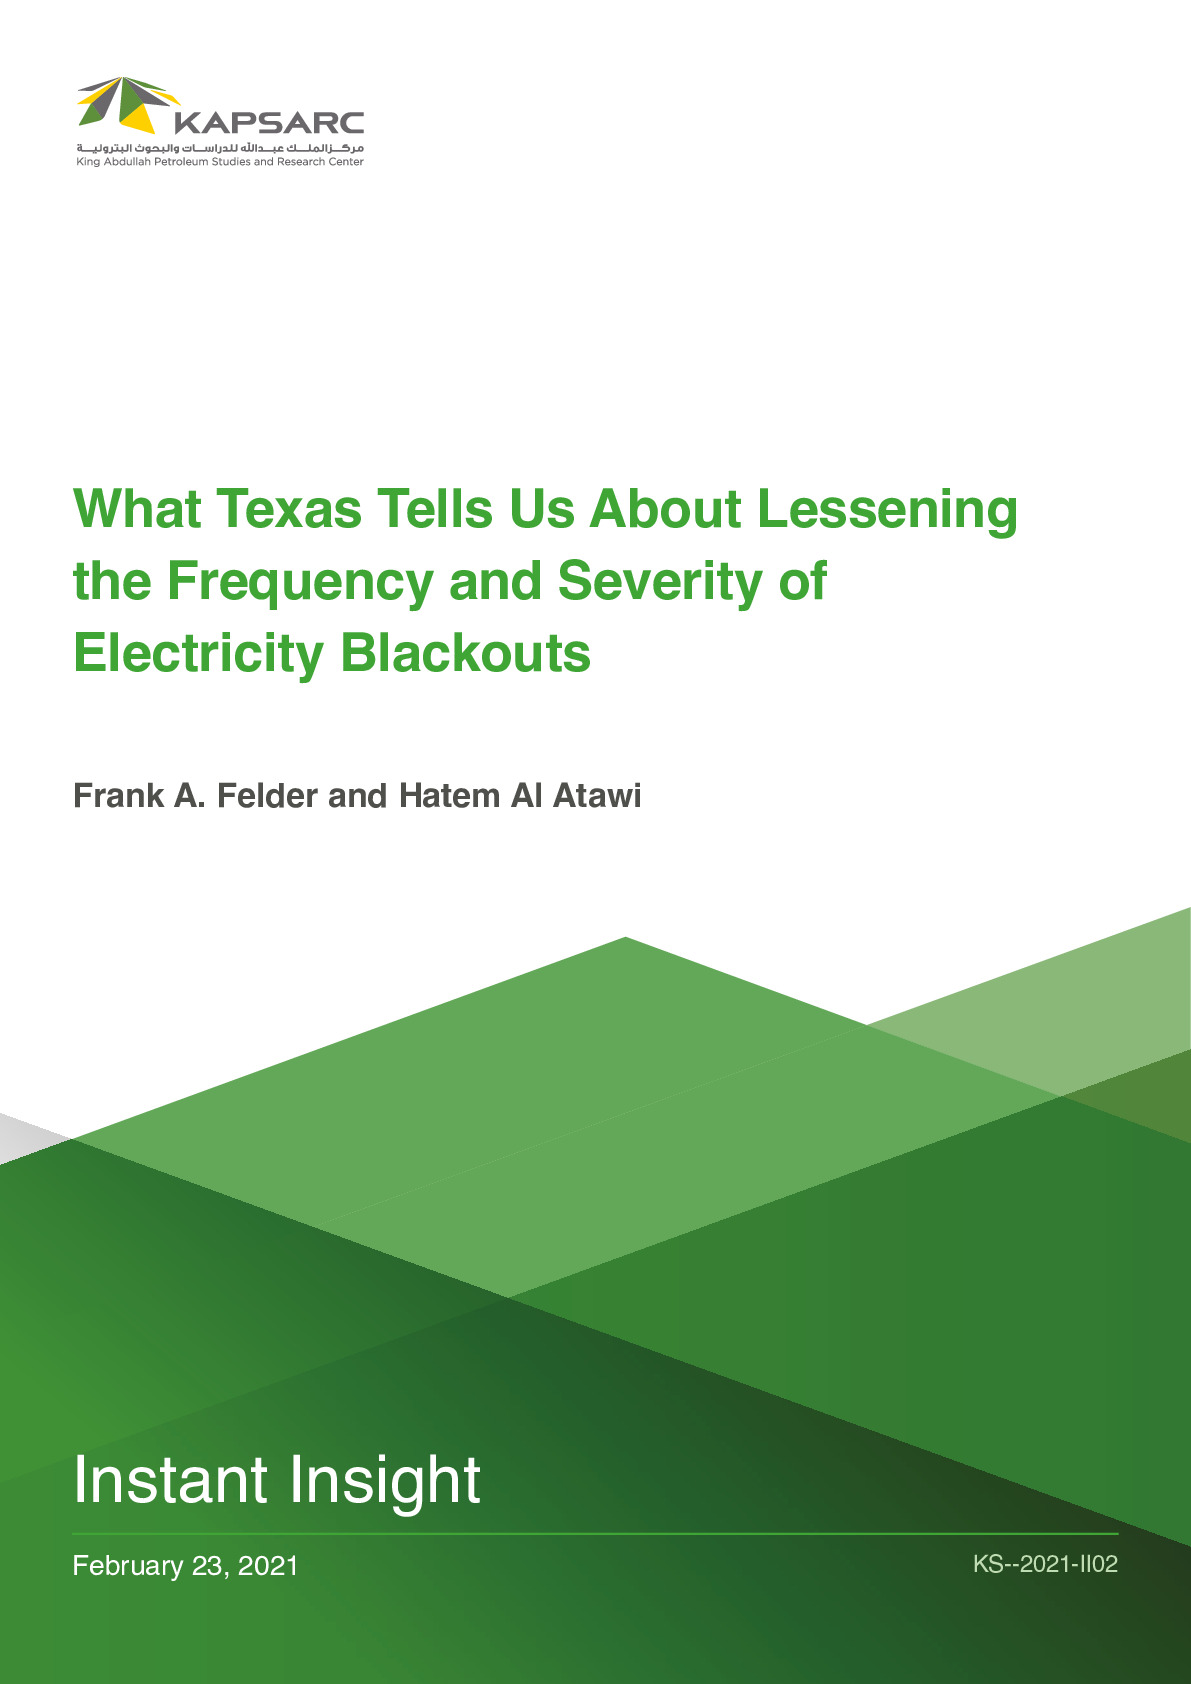 What Texas Tells Us About Lessening the Frequency and Severity of Electricity Blackouts?